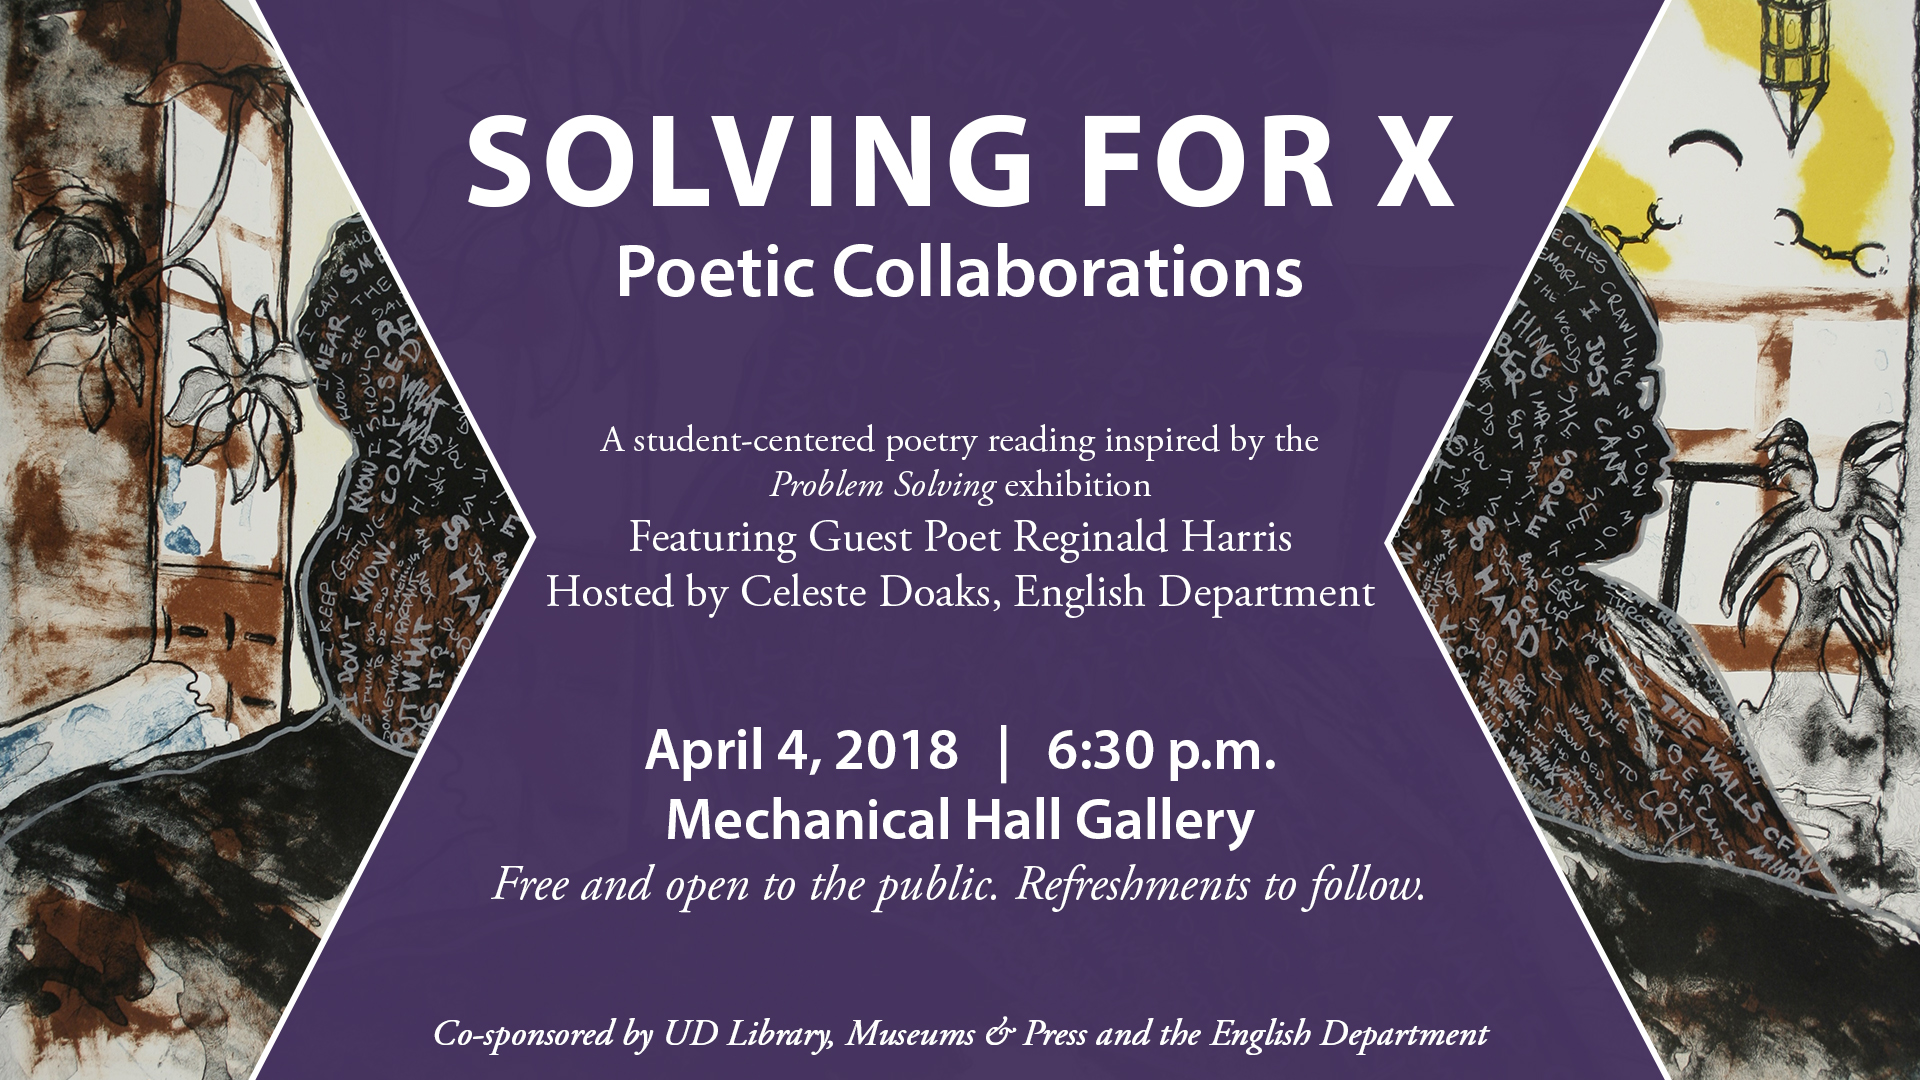 Solving for X: Poetic Collaborations